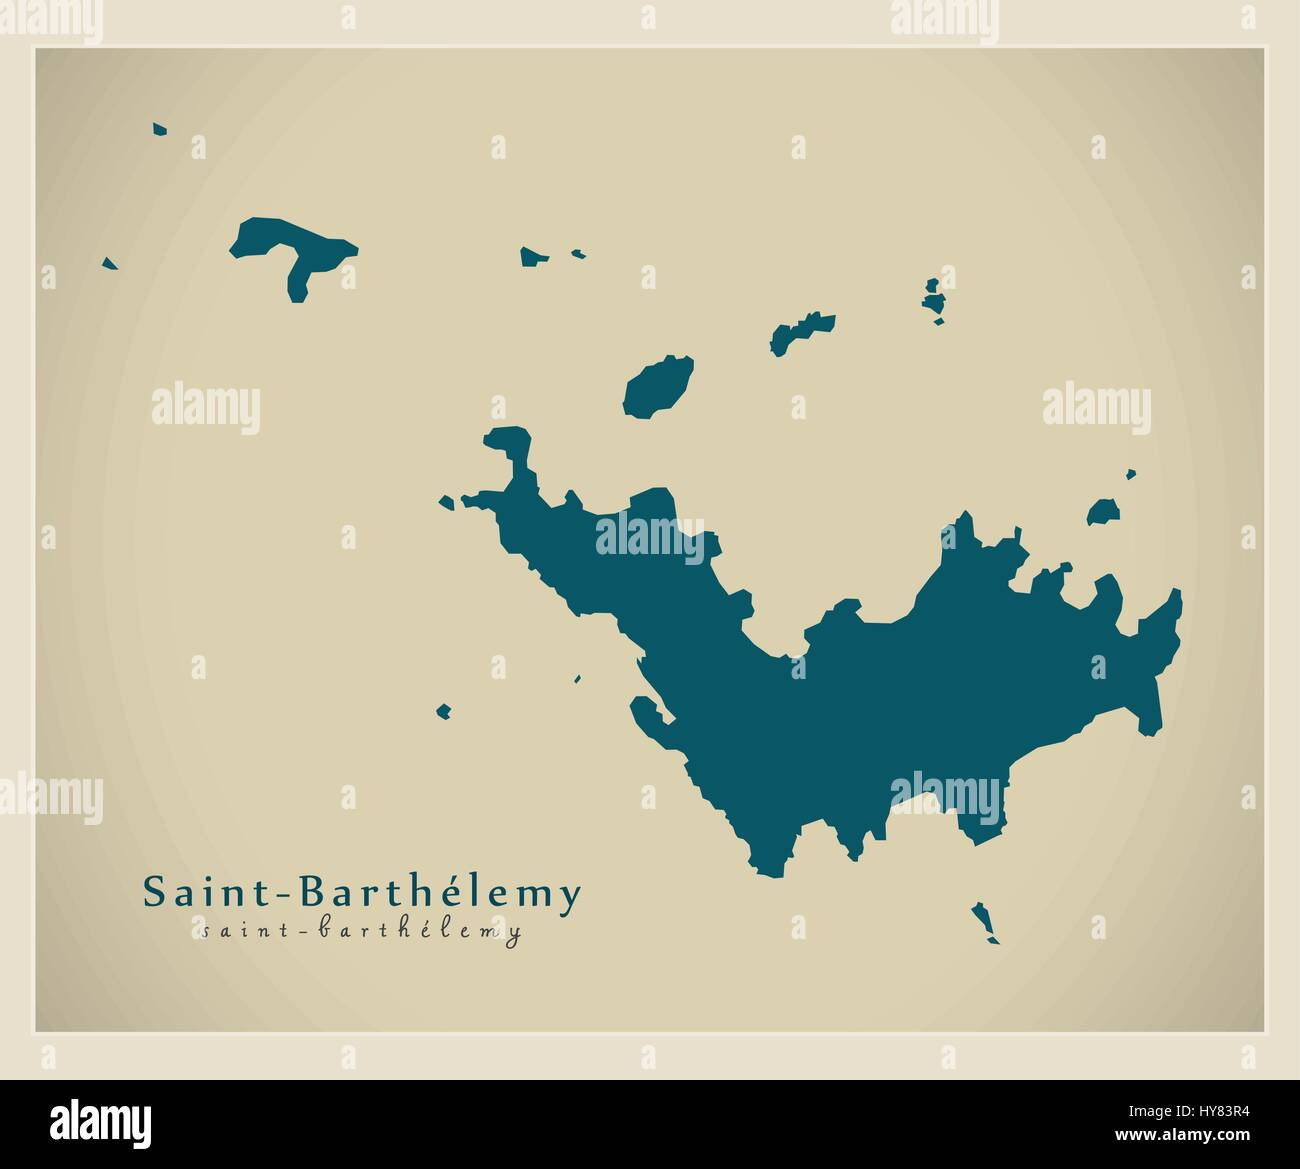 Modern map saint barthelemy bl stock vector art illustration modern map saint barthelemy bl publicscrutiny Choice Image